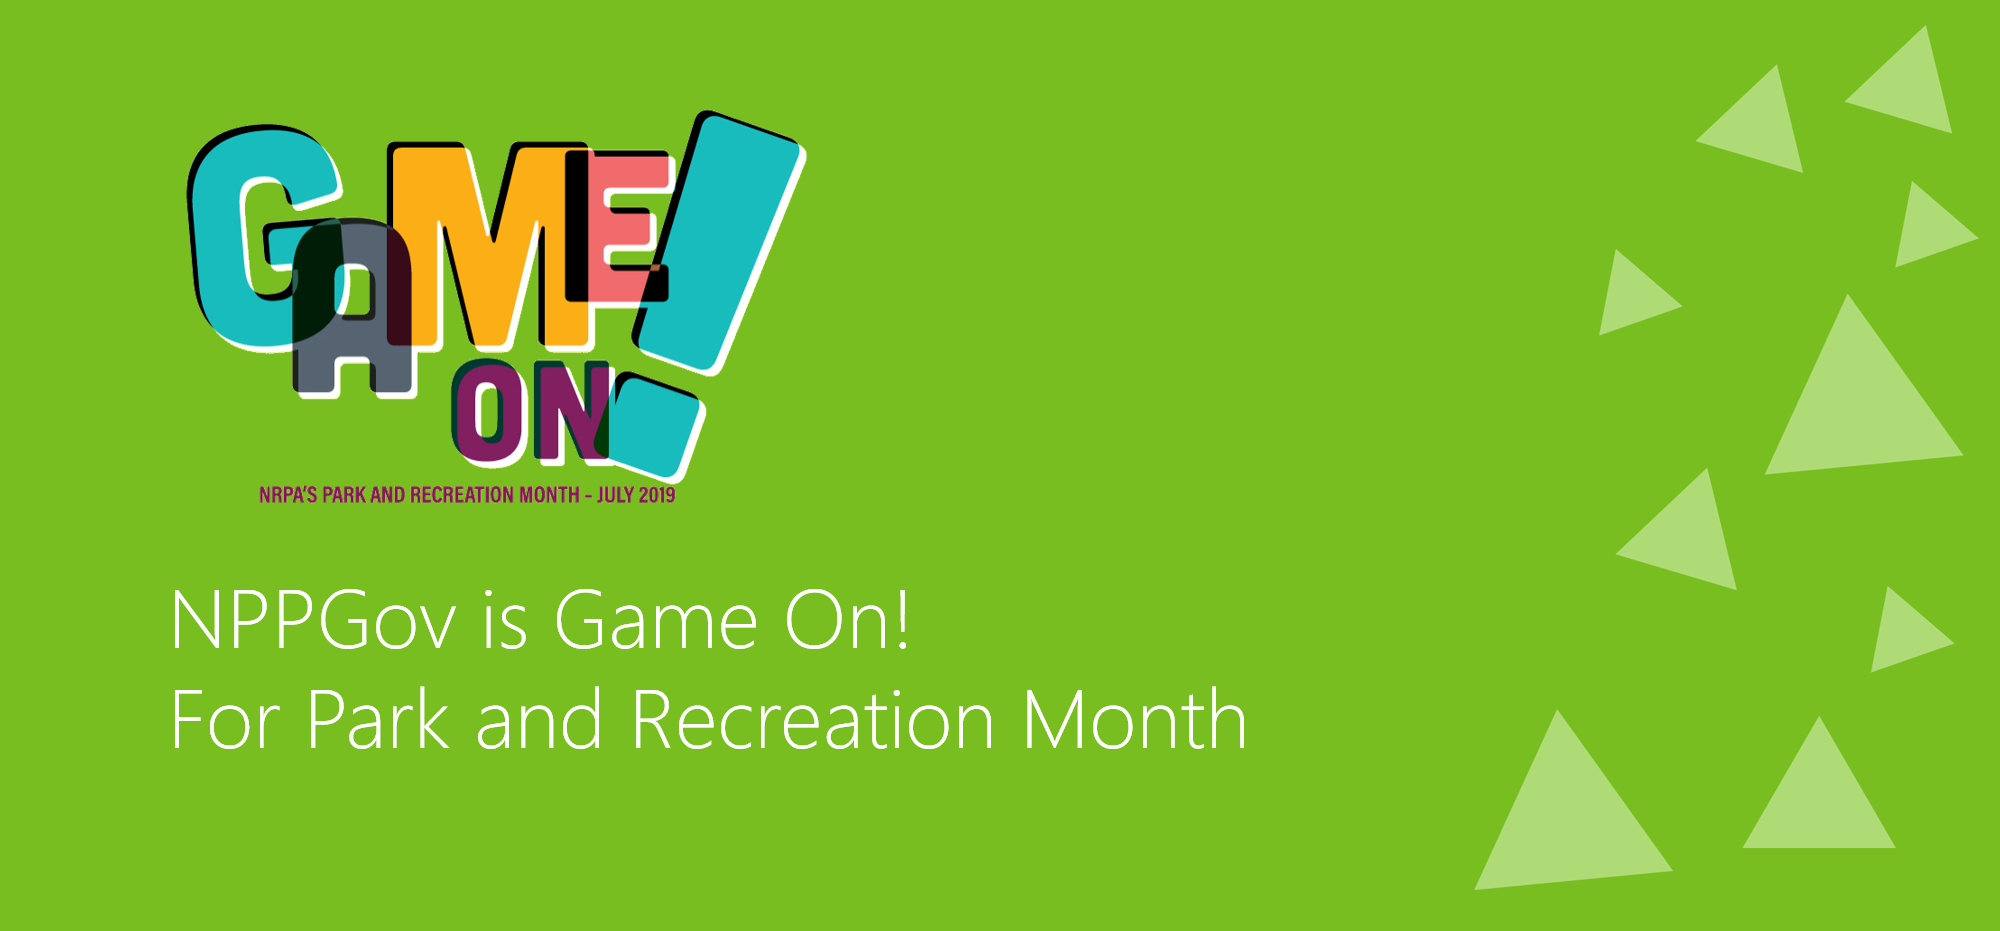 NPPGov is Game On! for Park and Recreation Month